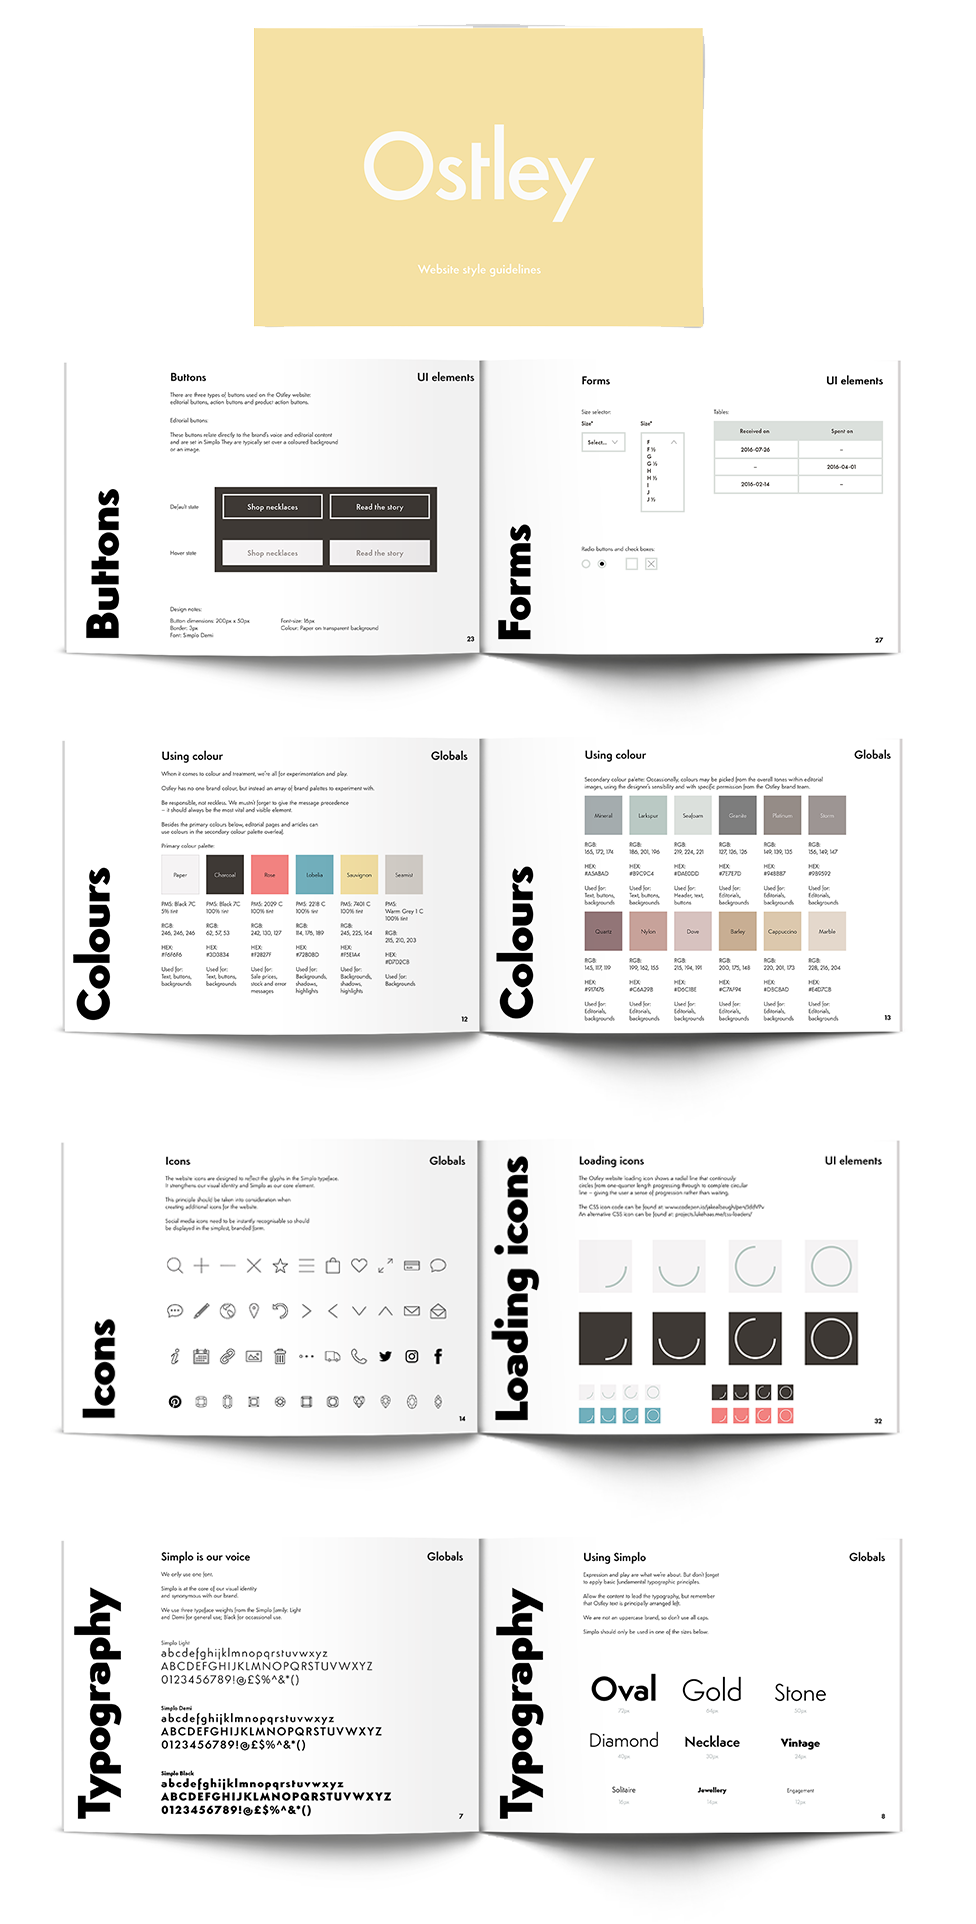 Ostley_Brand Guidelines.png